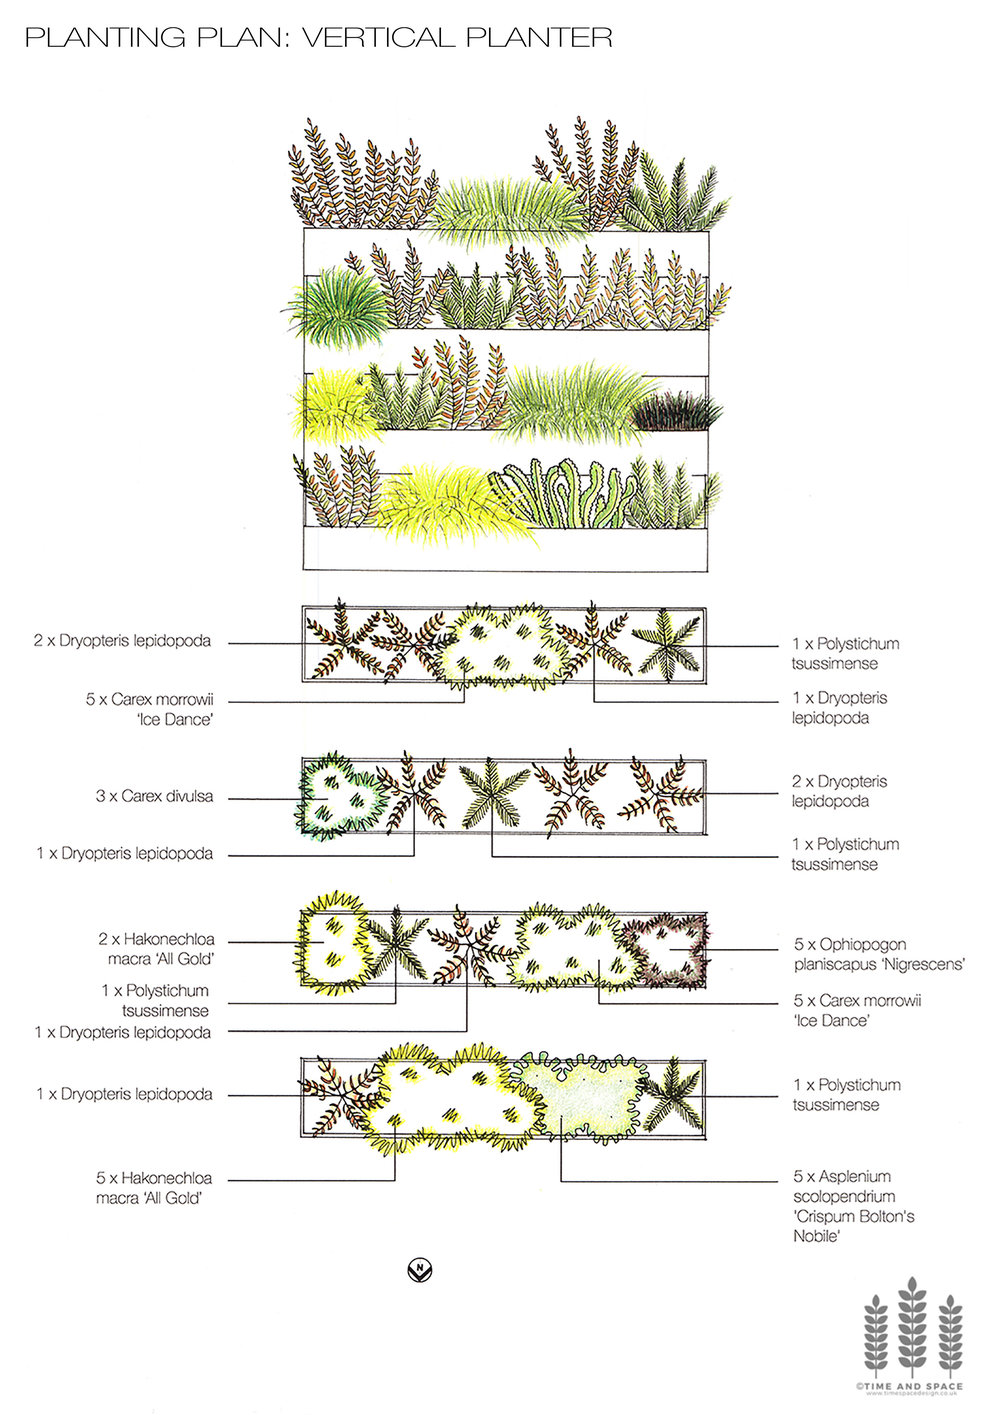 Vertical planter planting plan and elevation.jpg